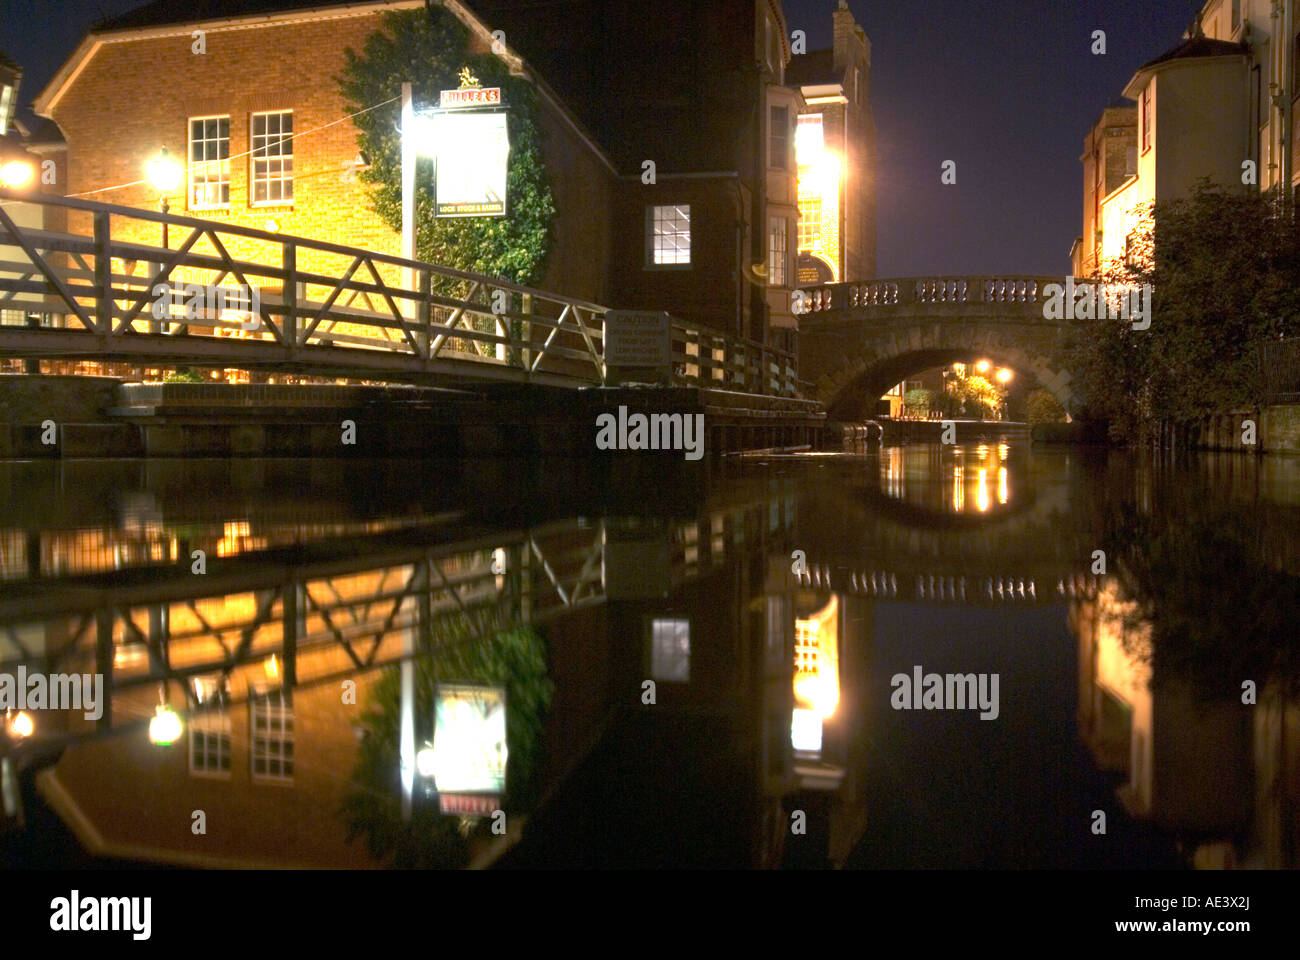 PICTURE CREDIT Doug Blane Pub and bridge at night in Newbury on the kennet and avon canalStock Photo